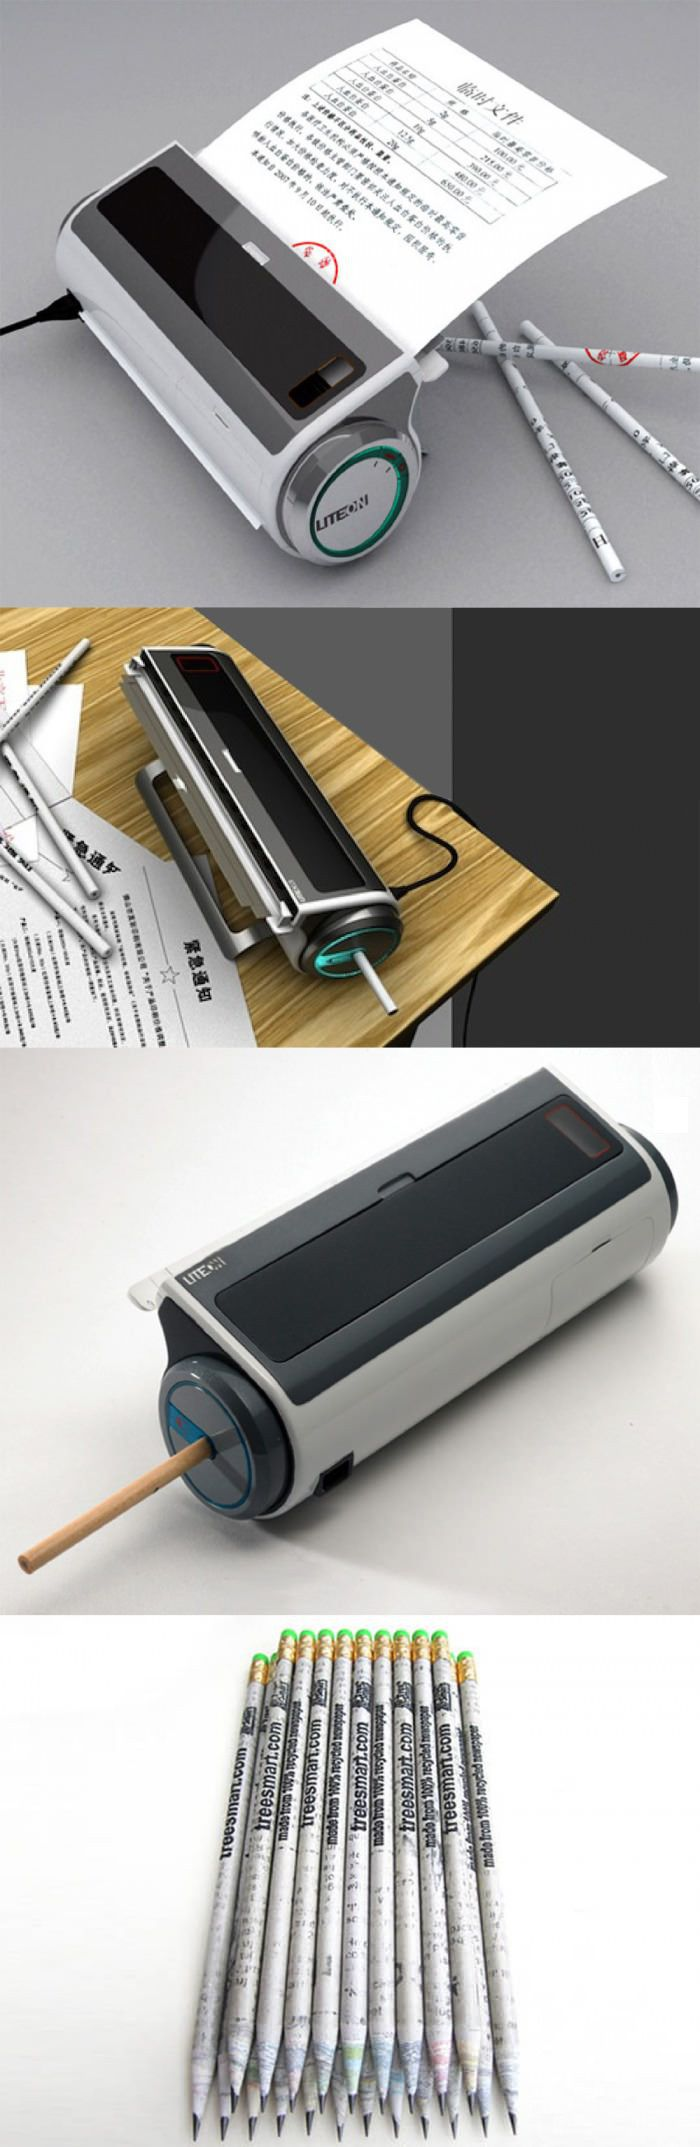 """Sometimes paper witch has been only printer several words on is thrown away as garbage in the office. This printer can make use of those papers to make scroll pencils for office use. You put the paper into the paper feed slot, it is automatically taken in and a complete pencil stick is """"printed"""" out."""